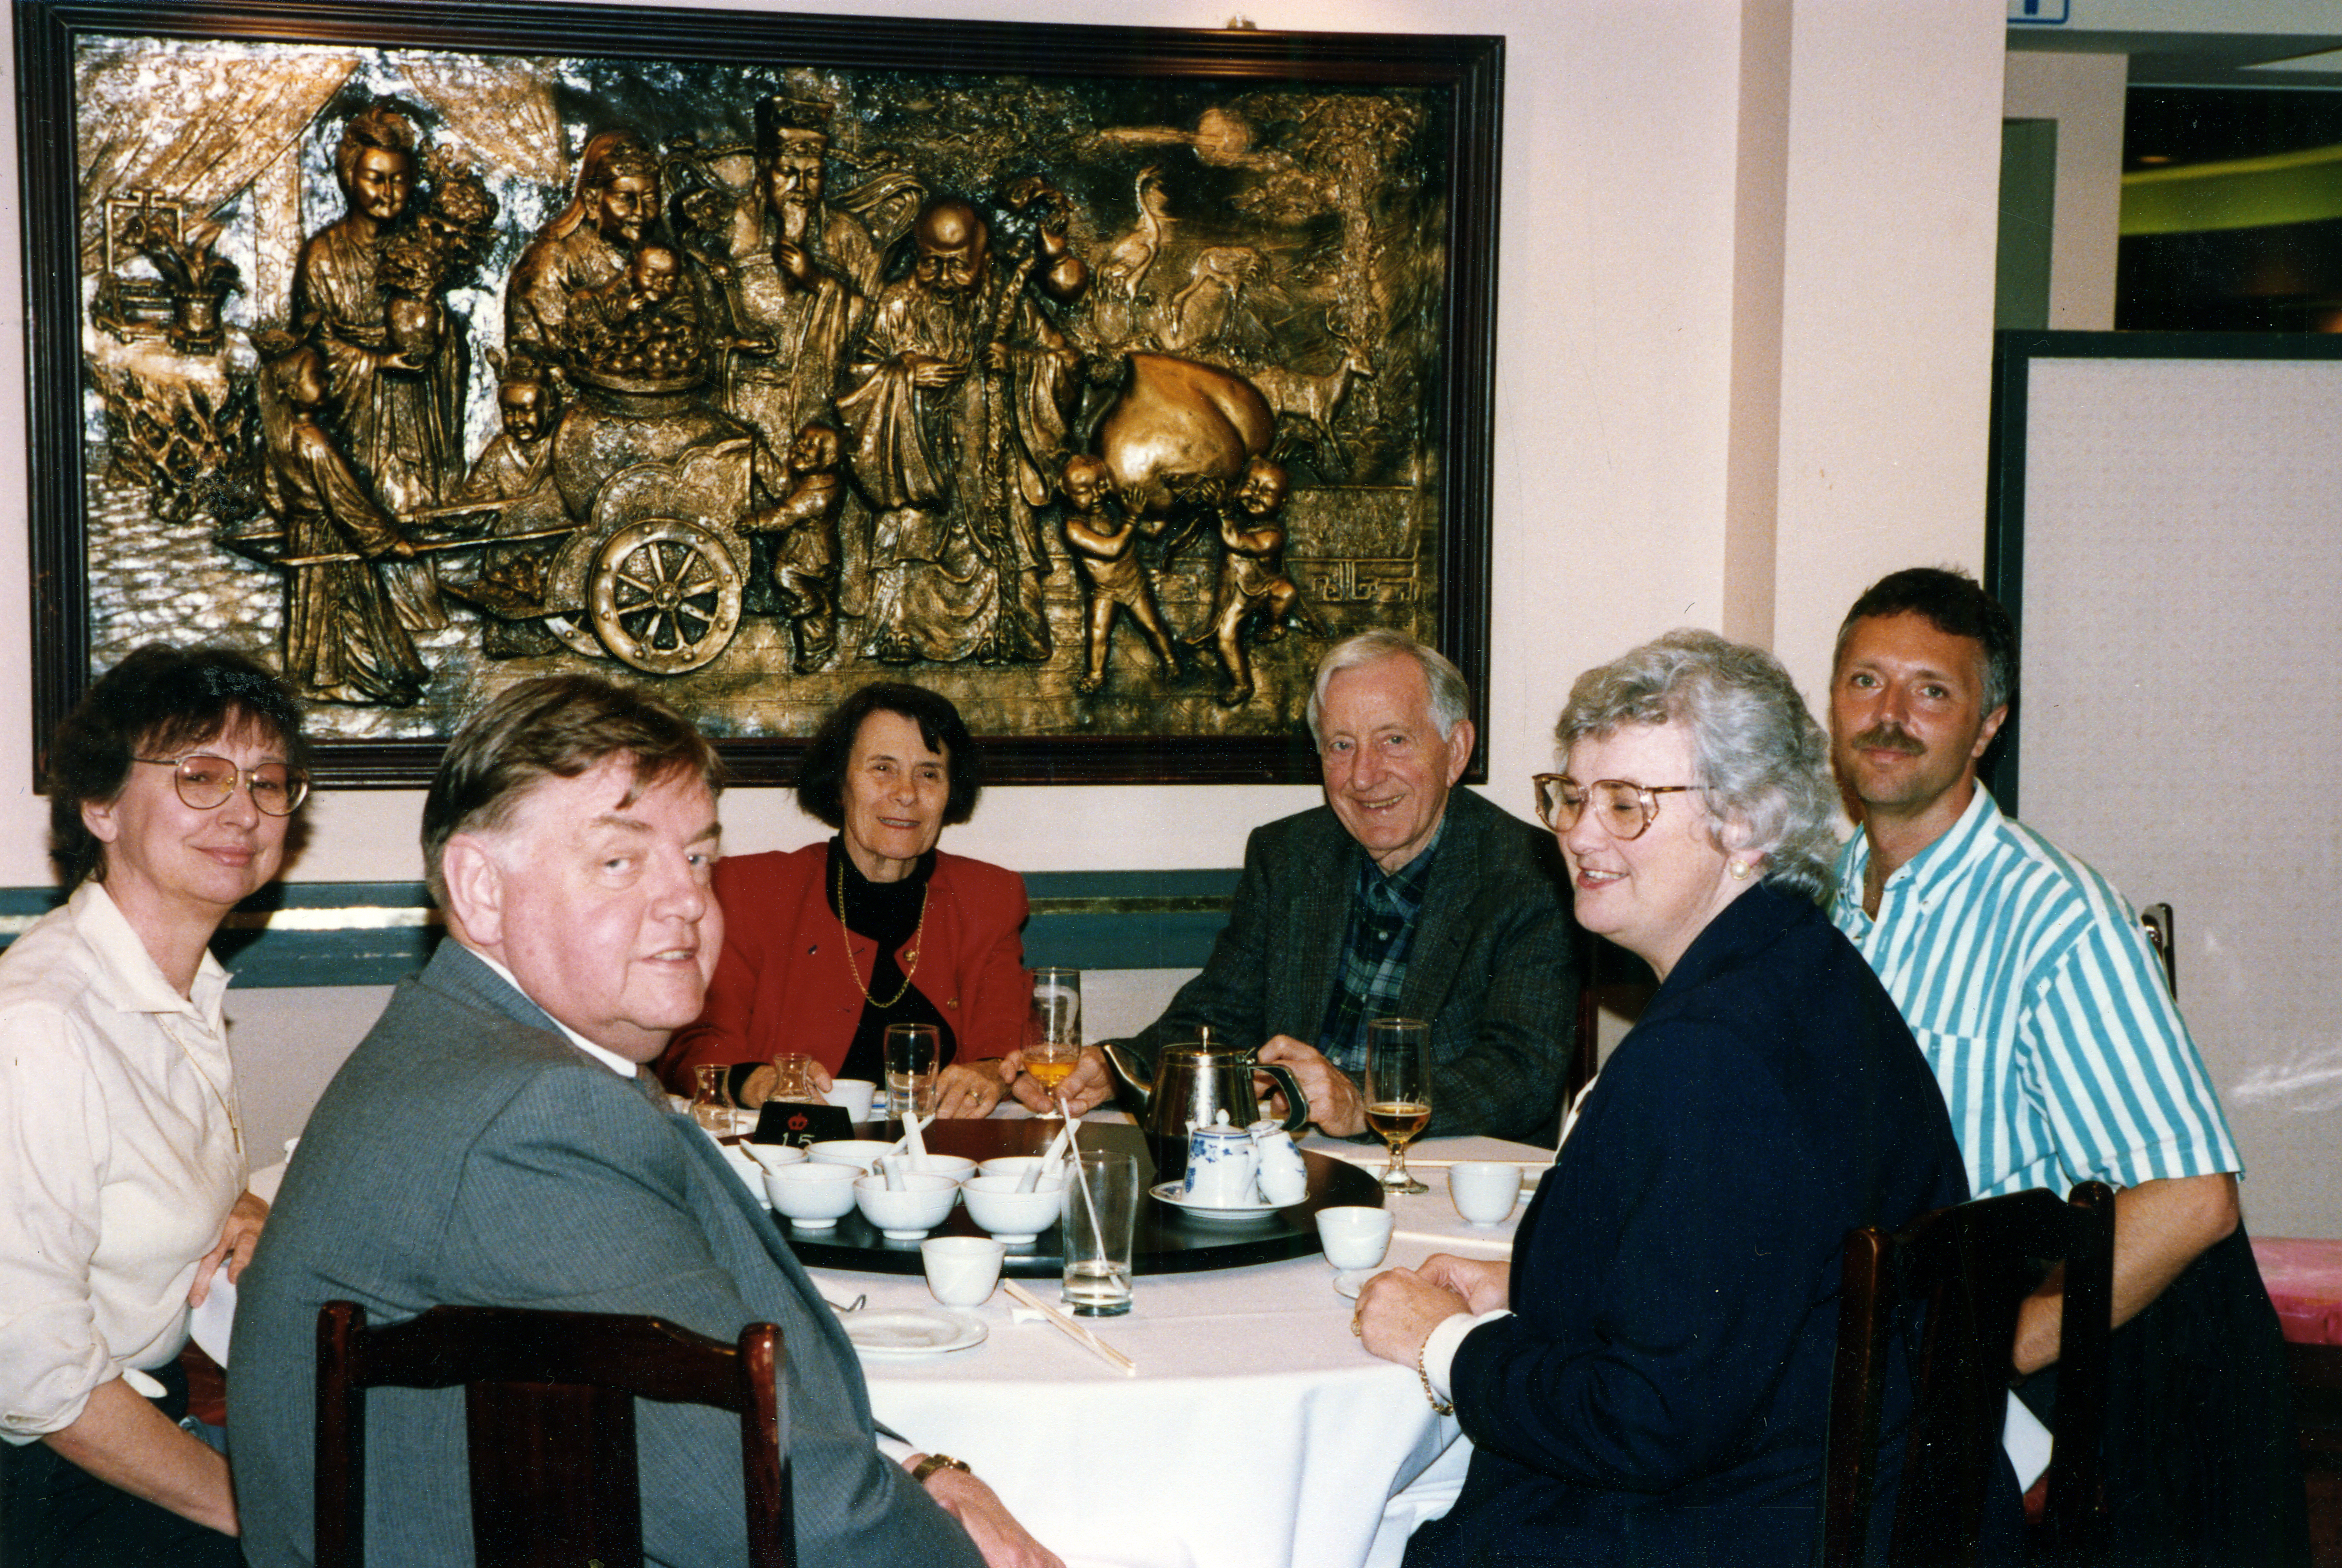 Pink Pearl Restaurant, Vancouver, 1989 Betty and Jim Birren (back) Dr. Susan Butt, Psychology; Dr. Donald MacDougall, Law; Dr. Lynn Beattie, Geriatric Medicine; Dr. Brian De Vries, School of Family